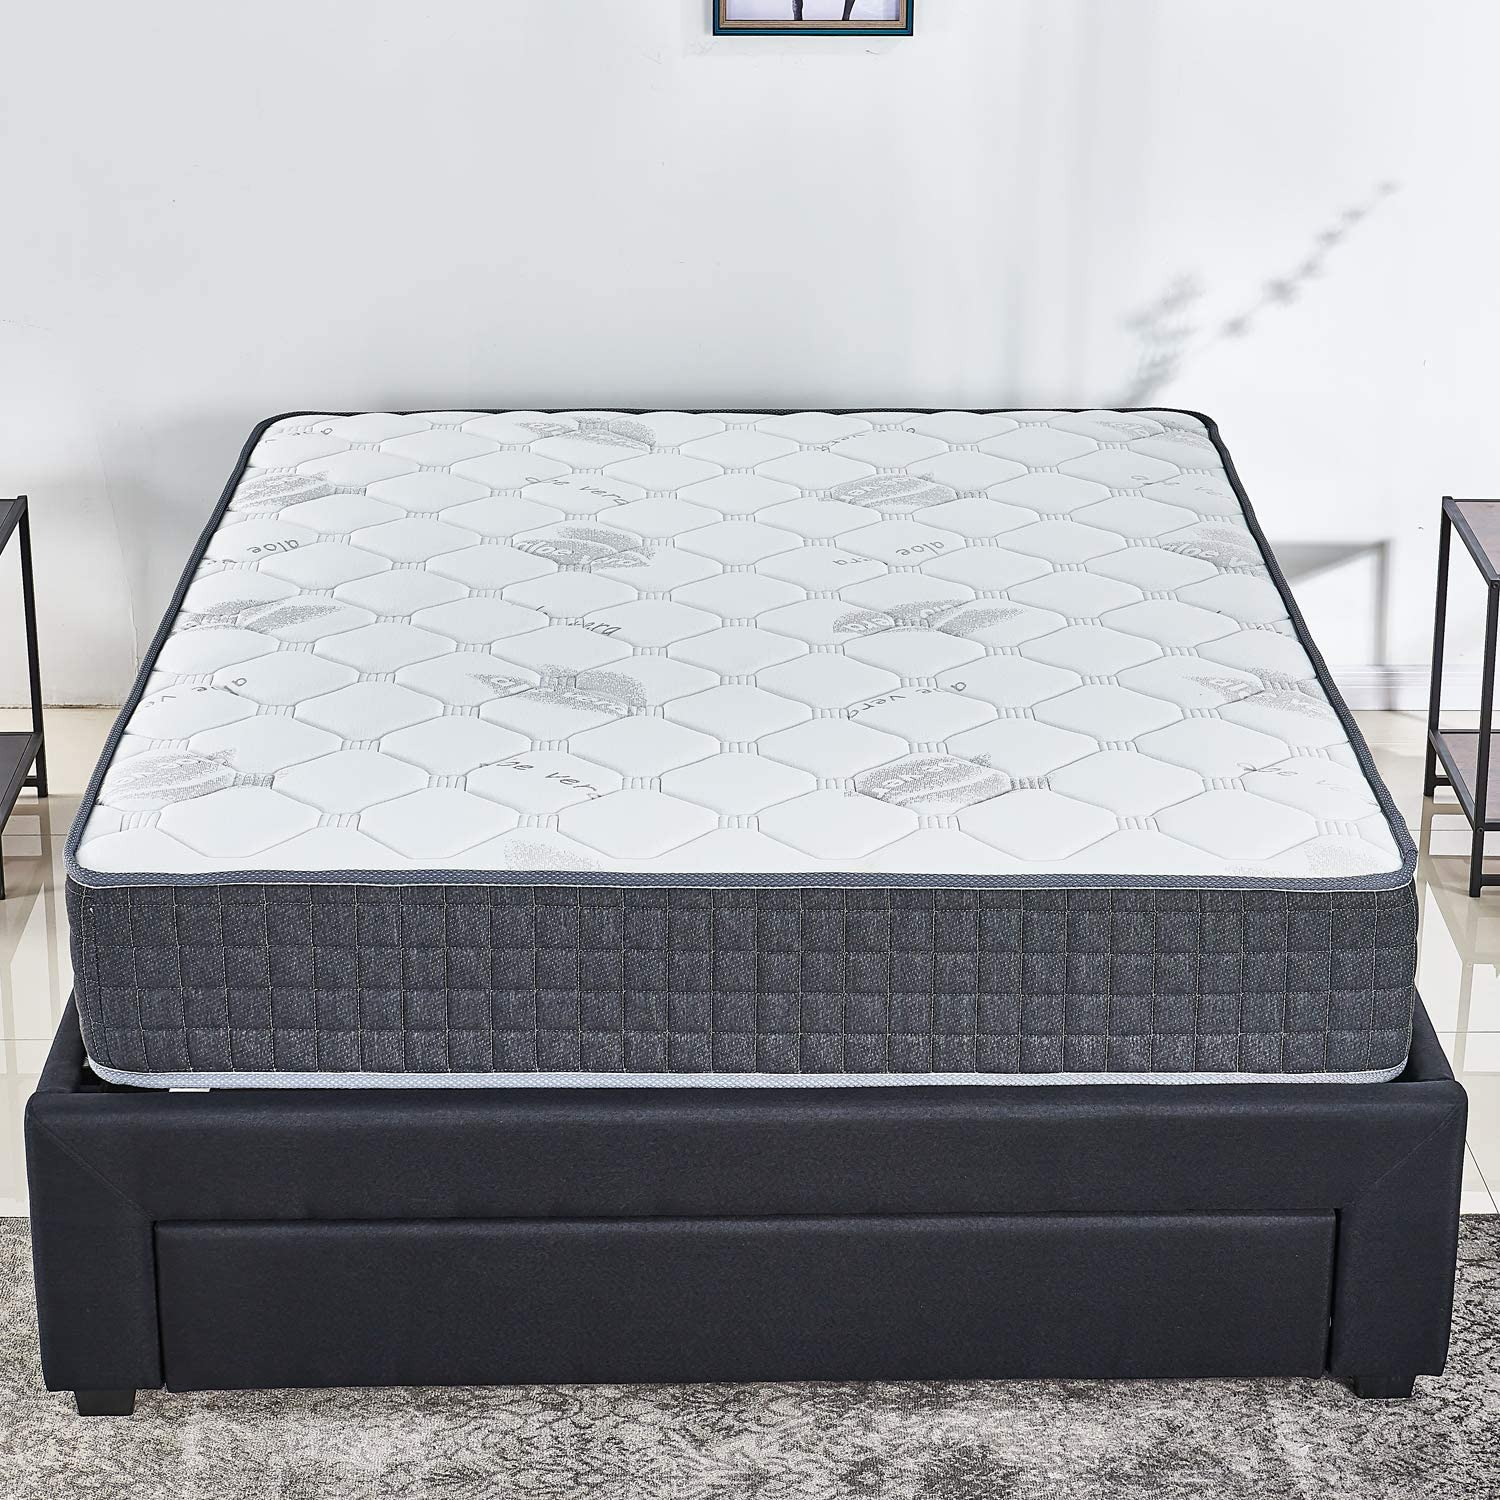 10 inch Latex Hybrid Coil Spring Mattress/Cooling Bed in a Box-Pocket Innerspring Mattress/CertiPUR-US/20Years Warranty Full/Firm But Comfortable (Queen)